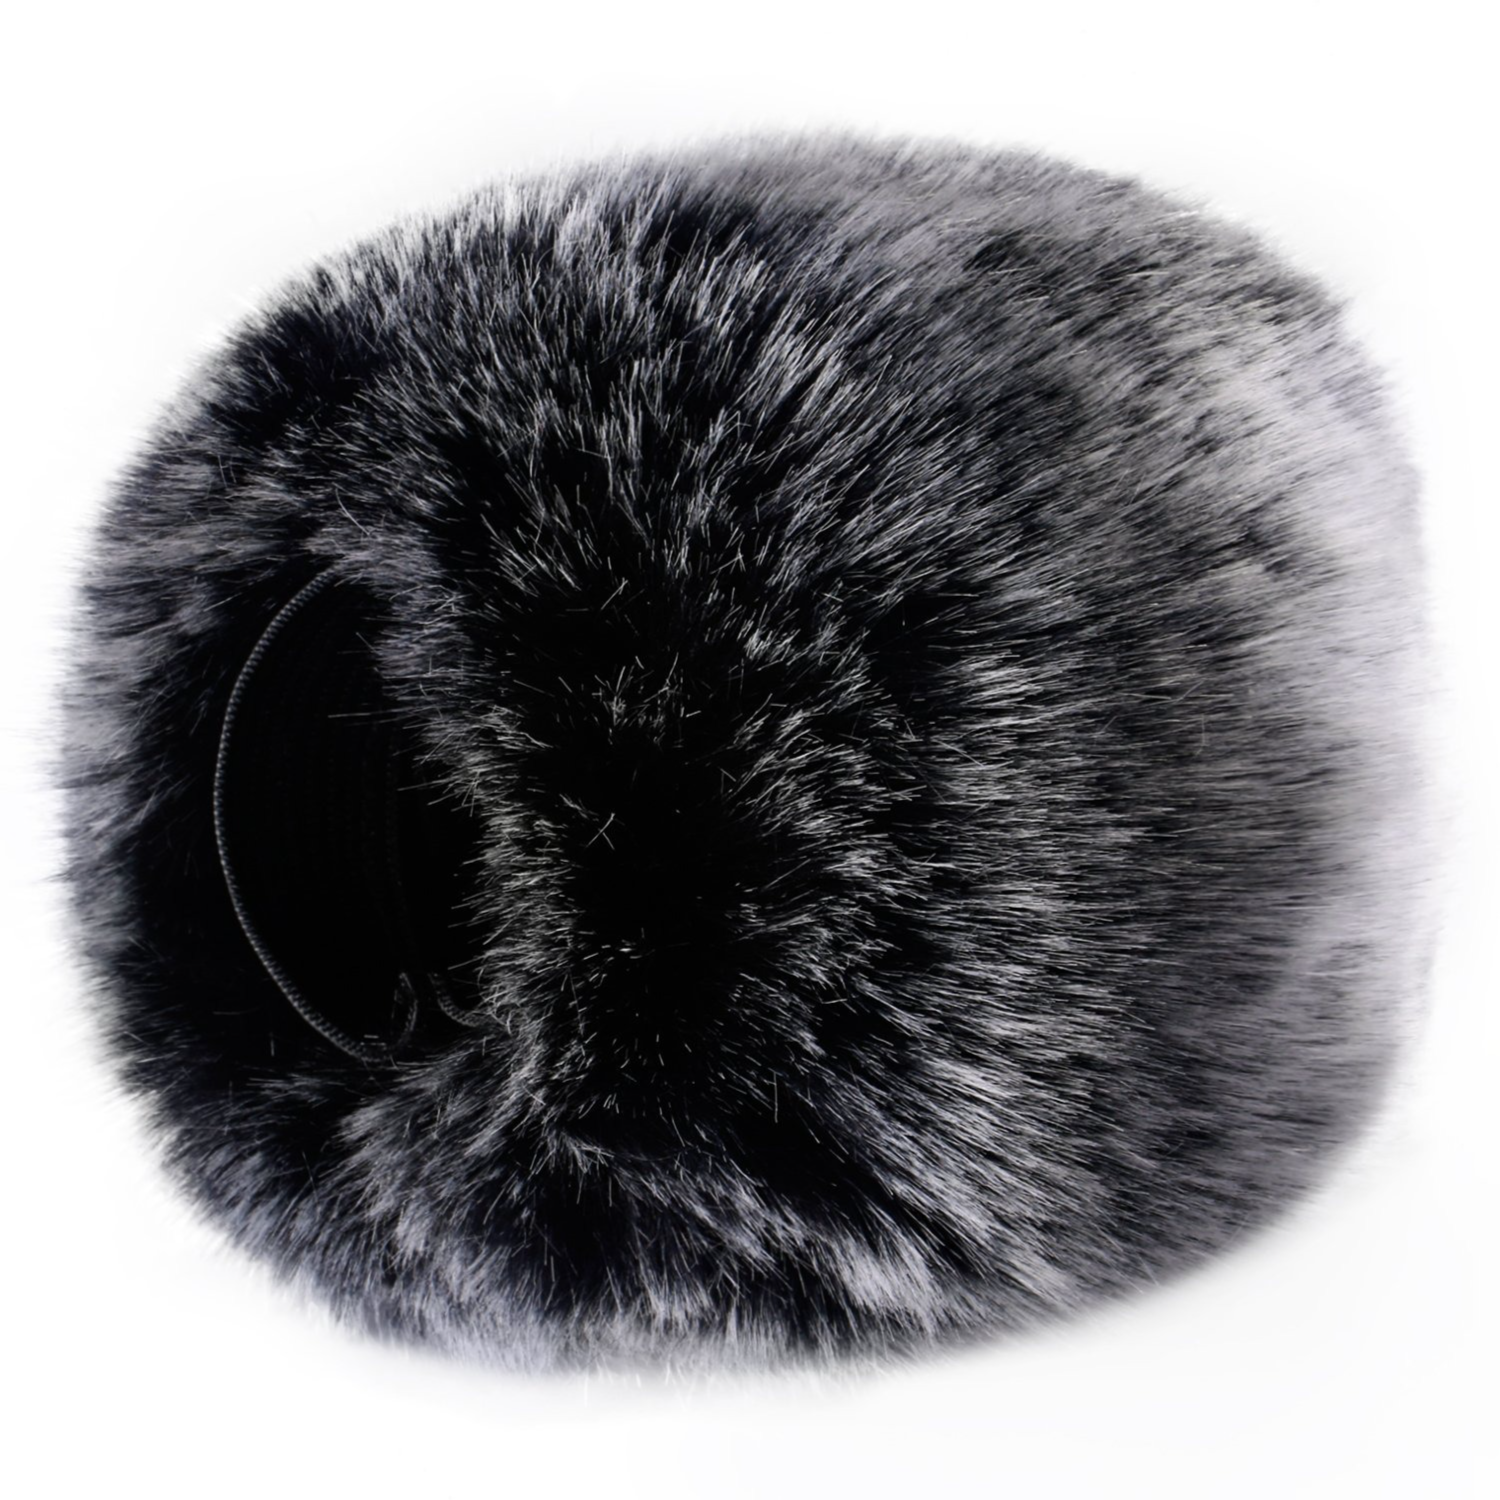 Neewer Outdoor Microphone Furry Windscreen Muff for Zoom H4n : Amazon.in: Musical Instruments